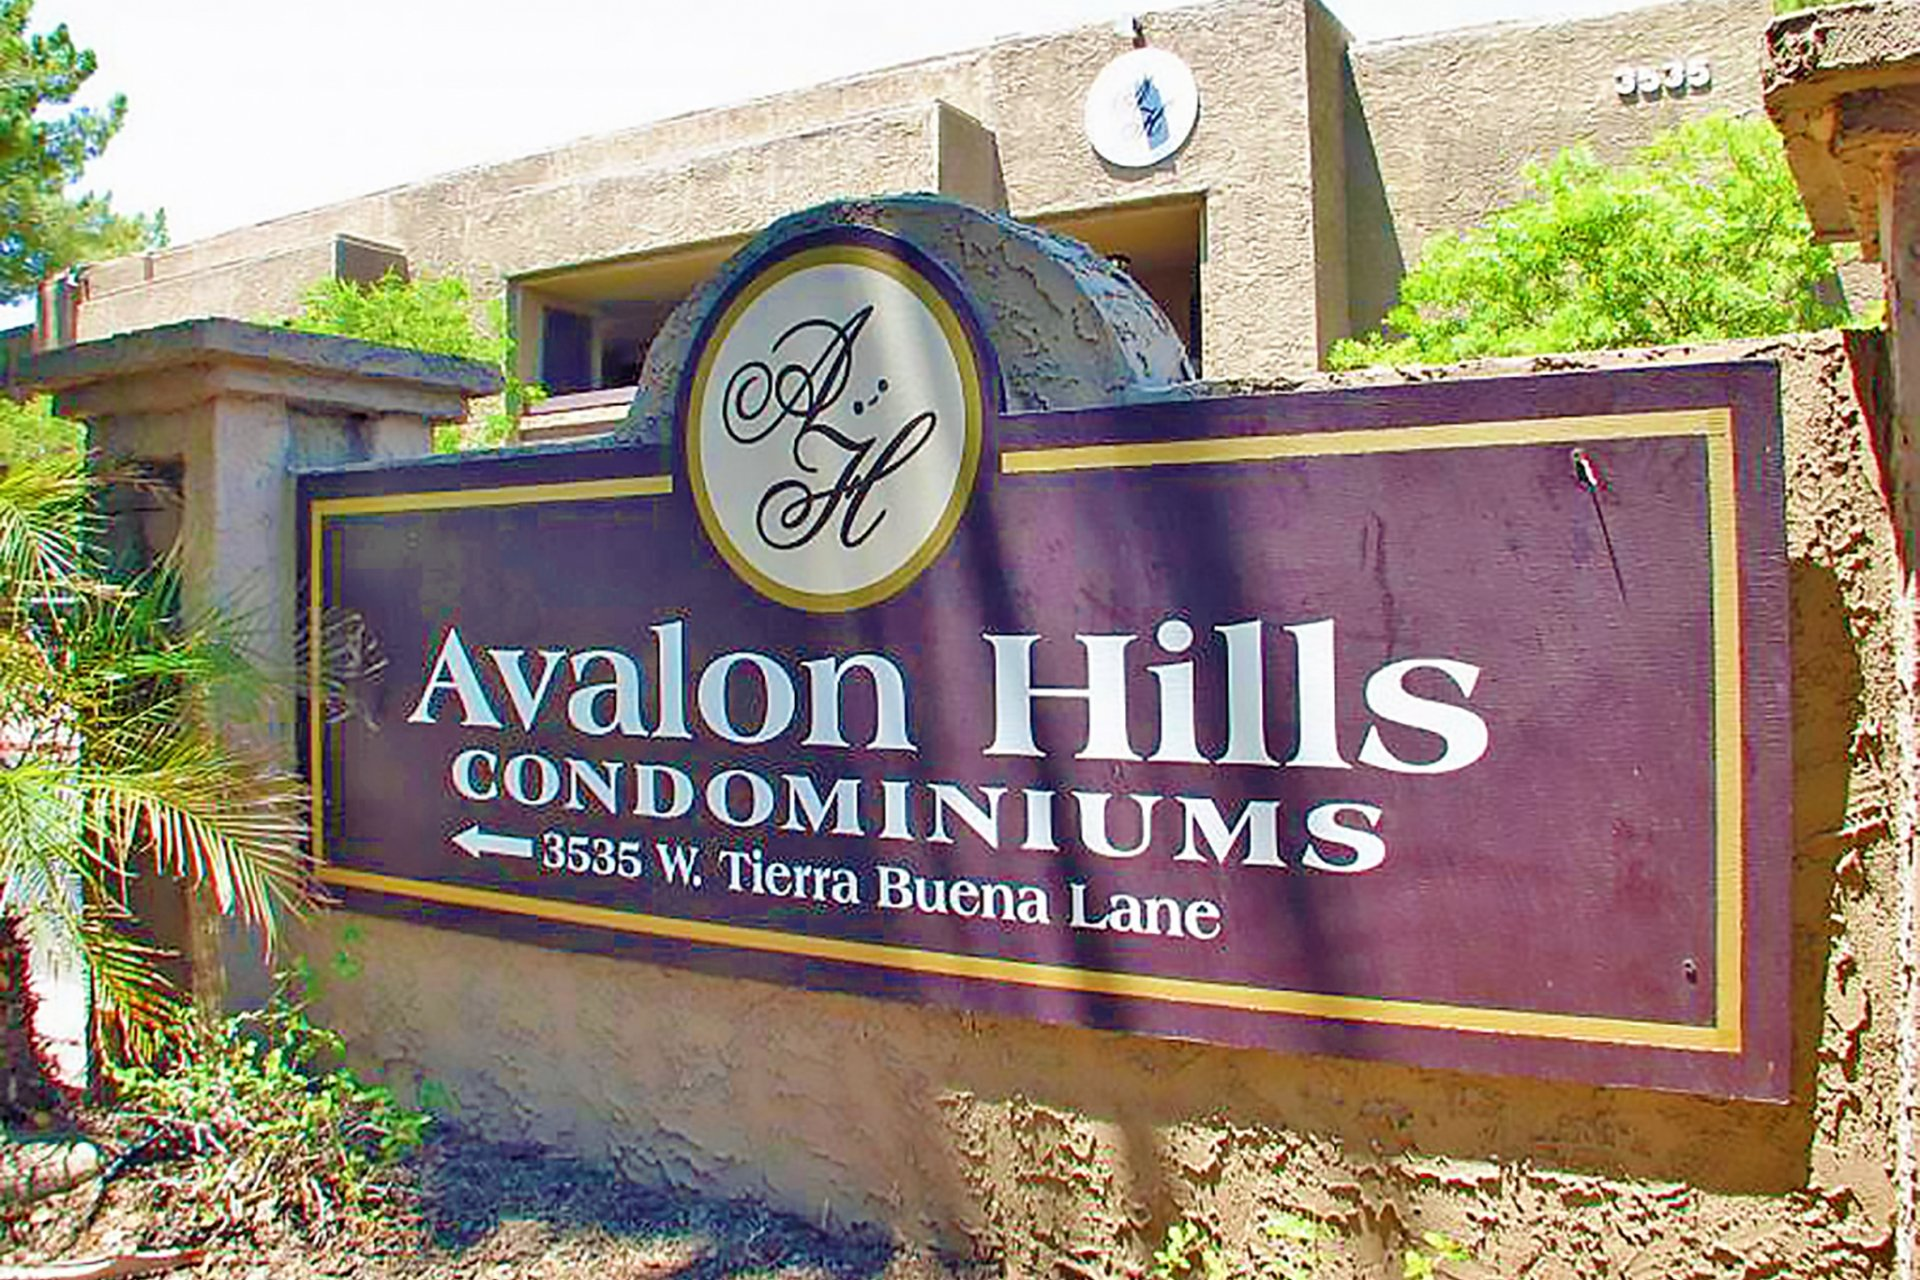 Avalon Hills apartments Phoenix, AZ signage